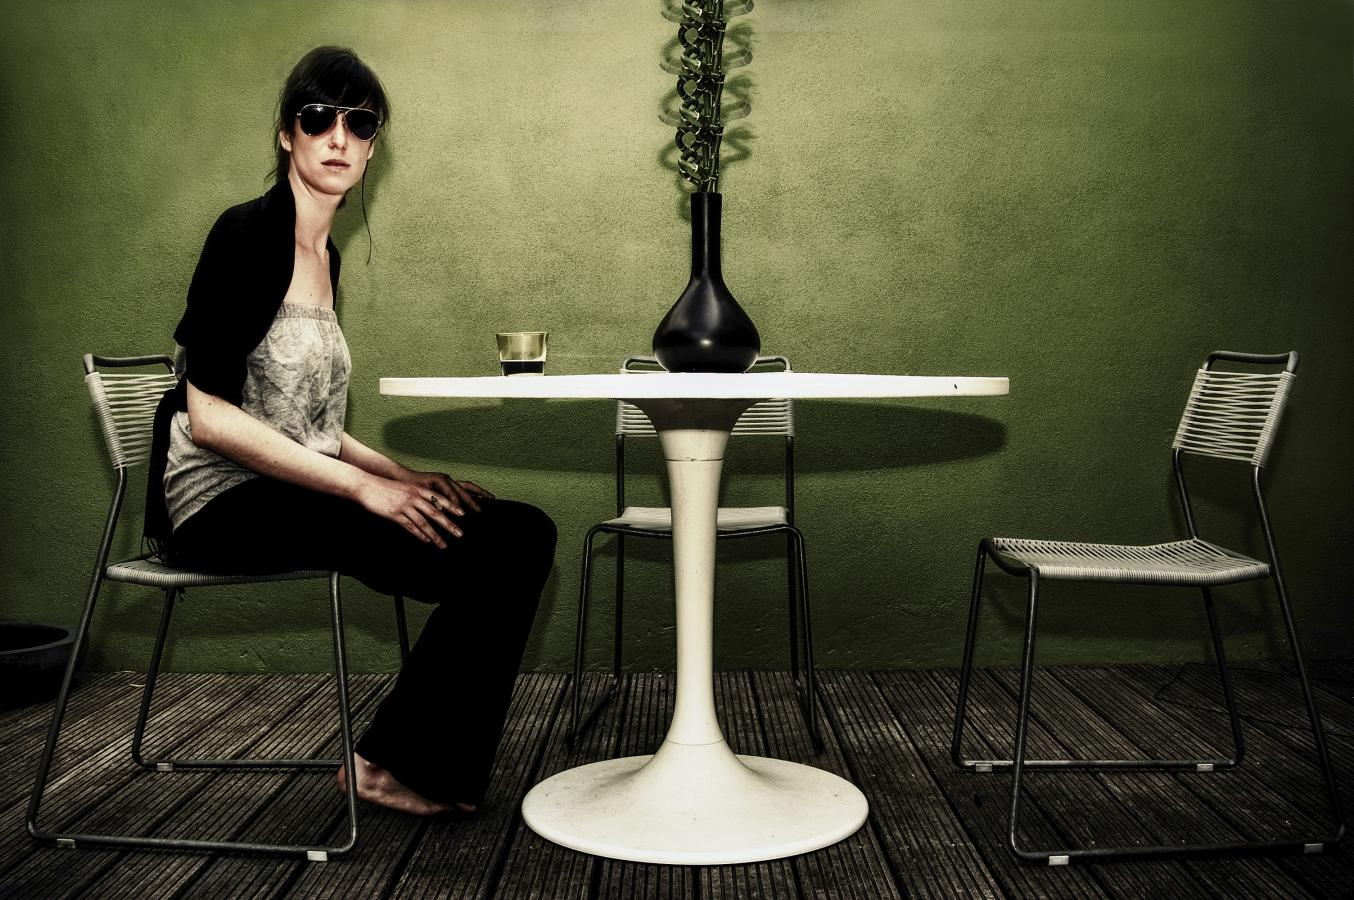 white-table-green-wall-rayban-and-a-coke